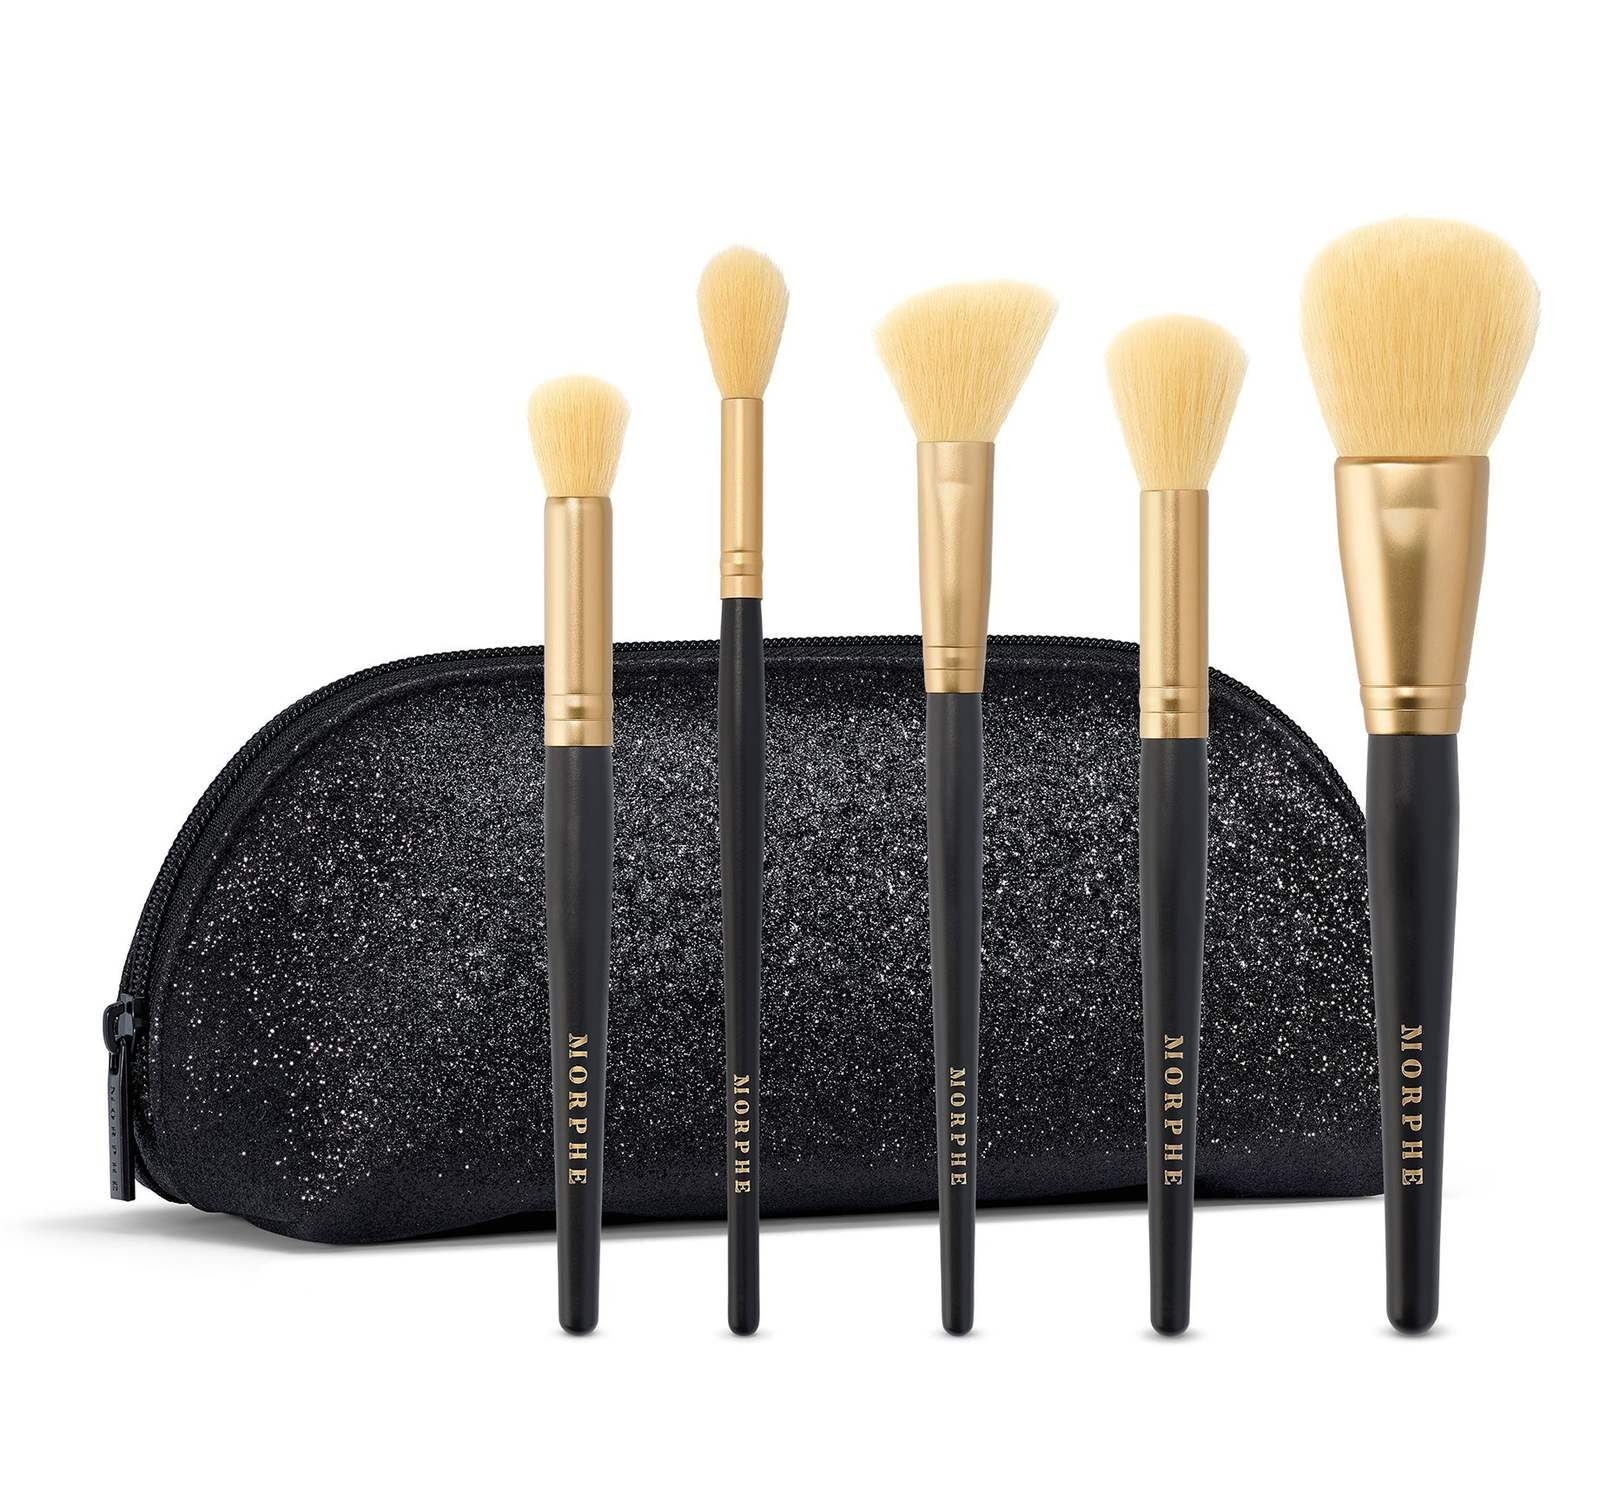 Kit Complexion Crew MORPHE BRUSHES